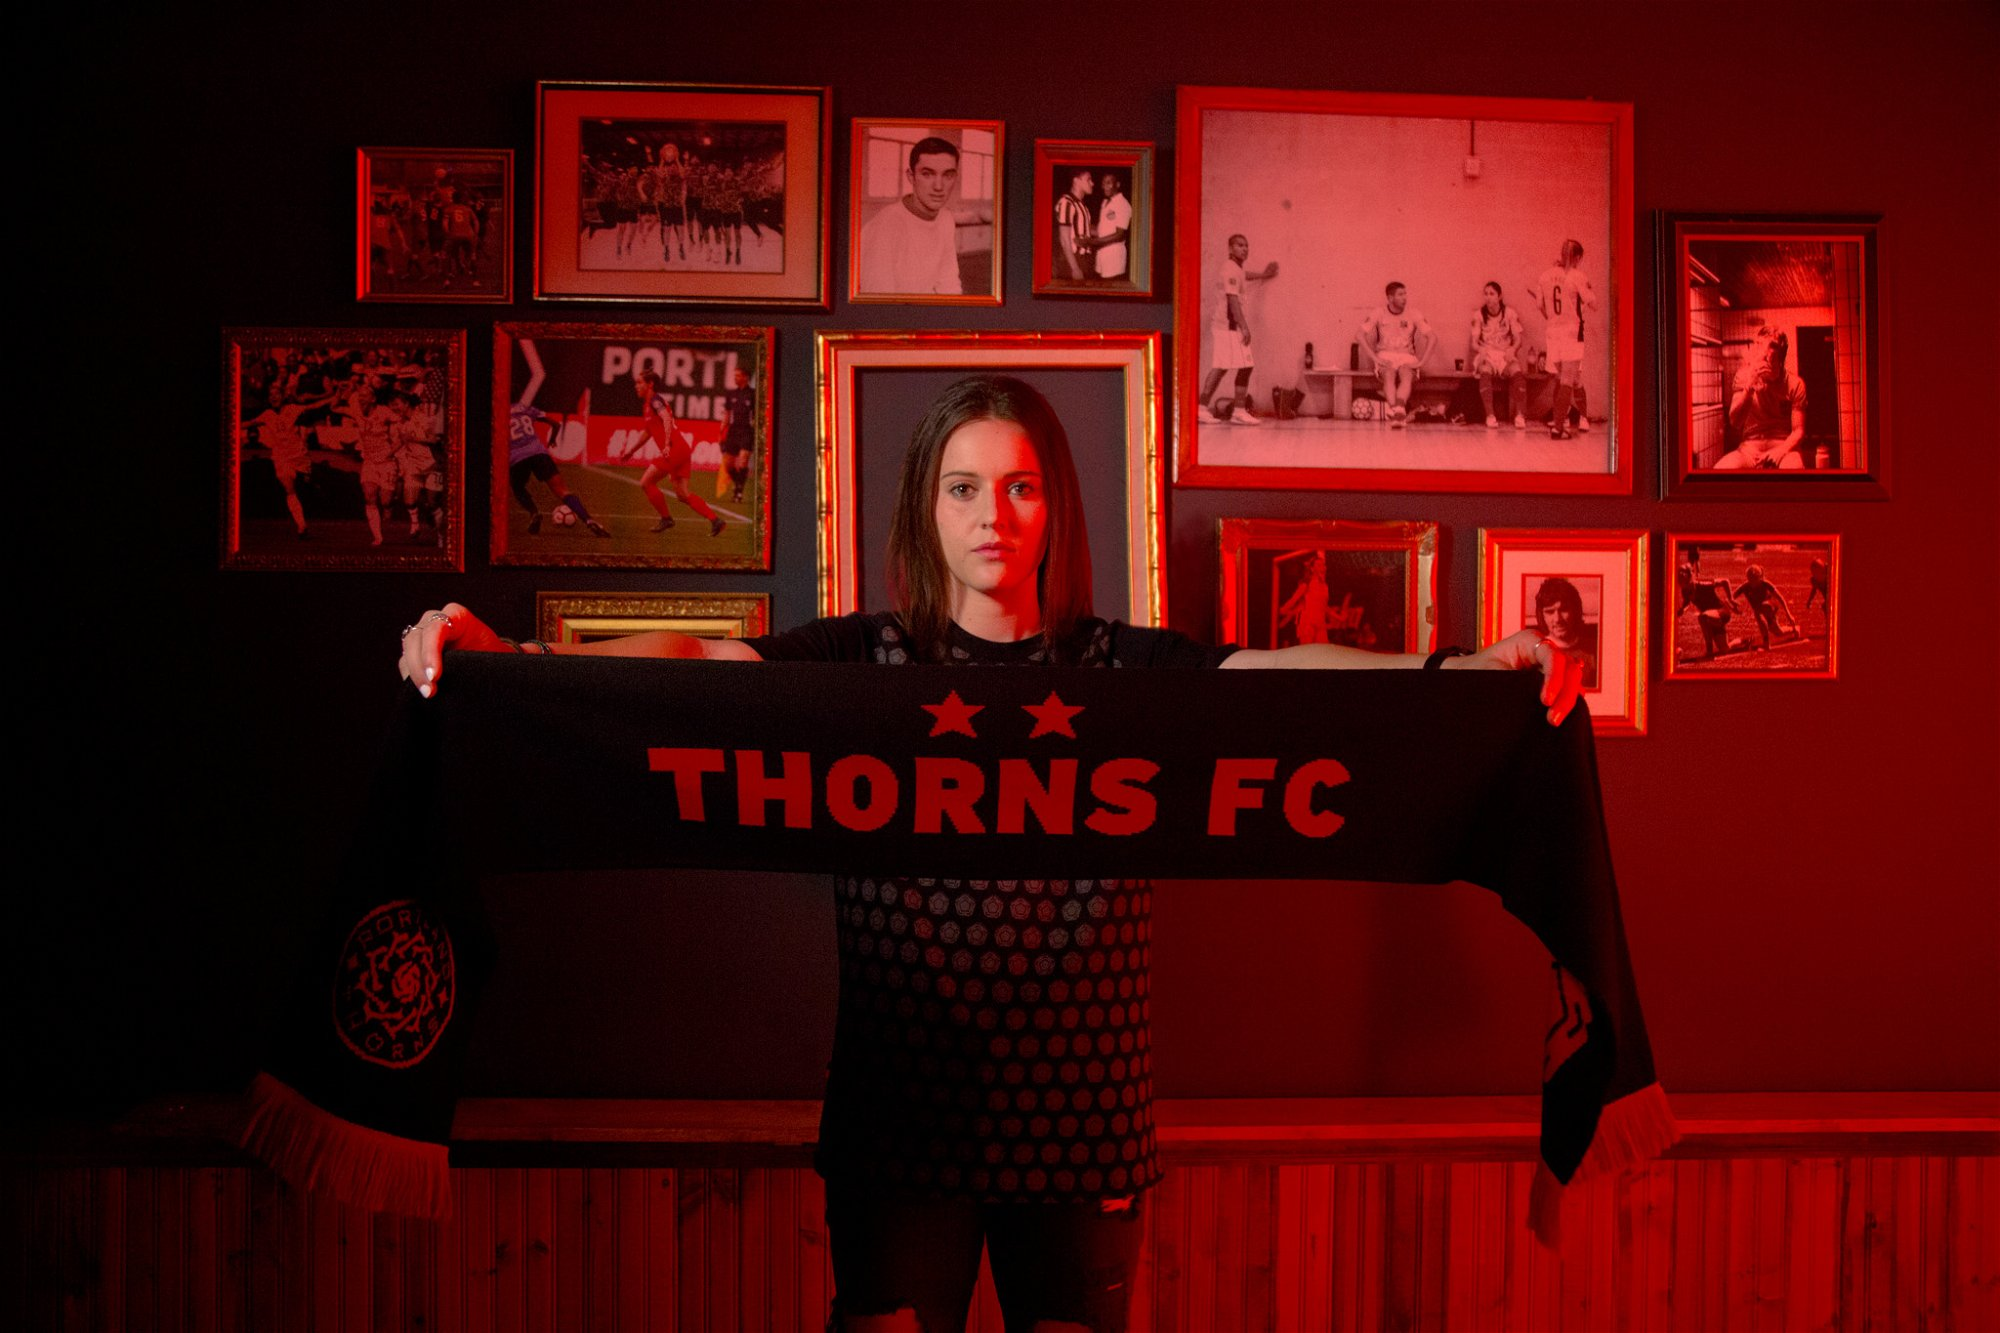 Portland Thorns x LBF exclusive collaboration